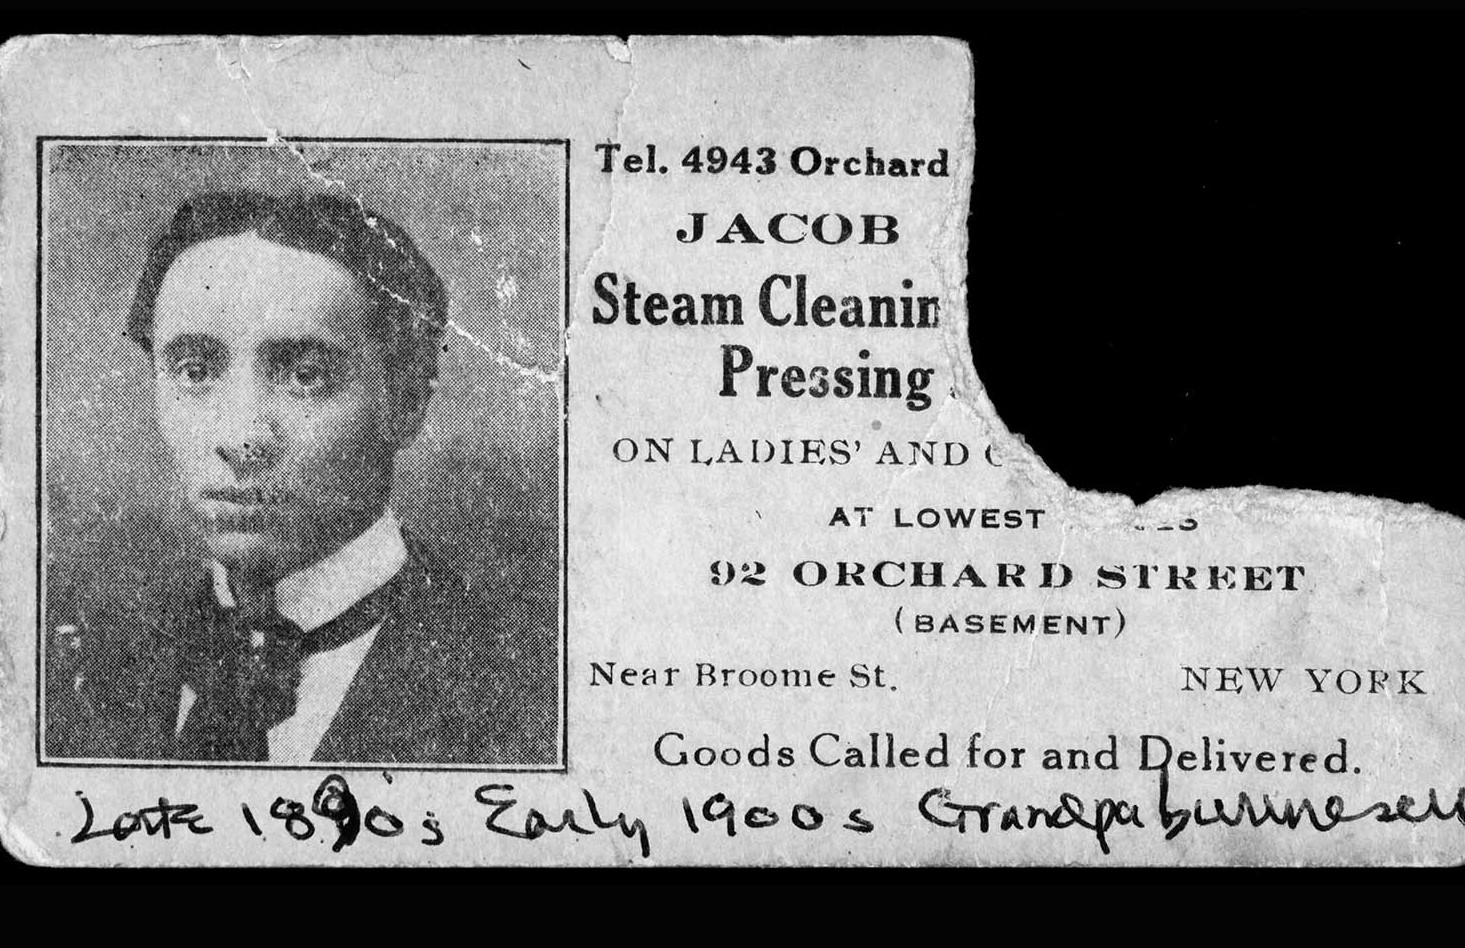 A torn business card with a photo of a young Jacob Burinescu, his address, and a listing of the laundry services he offered